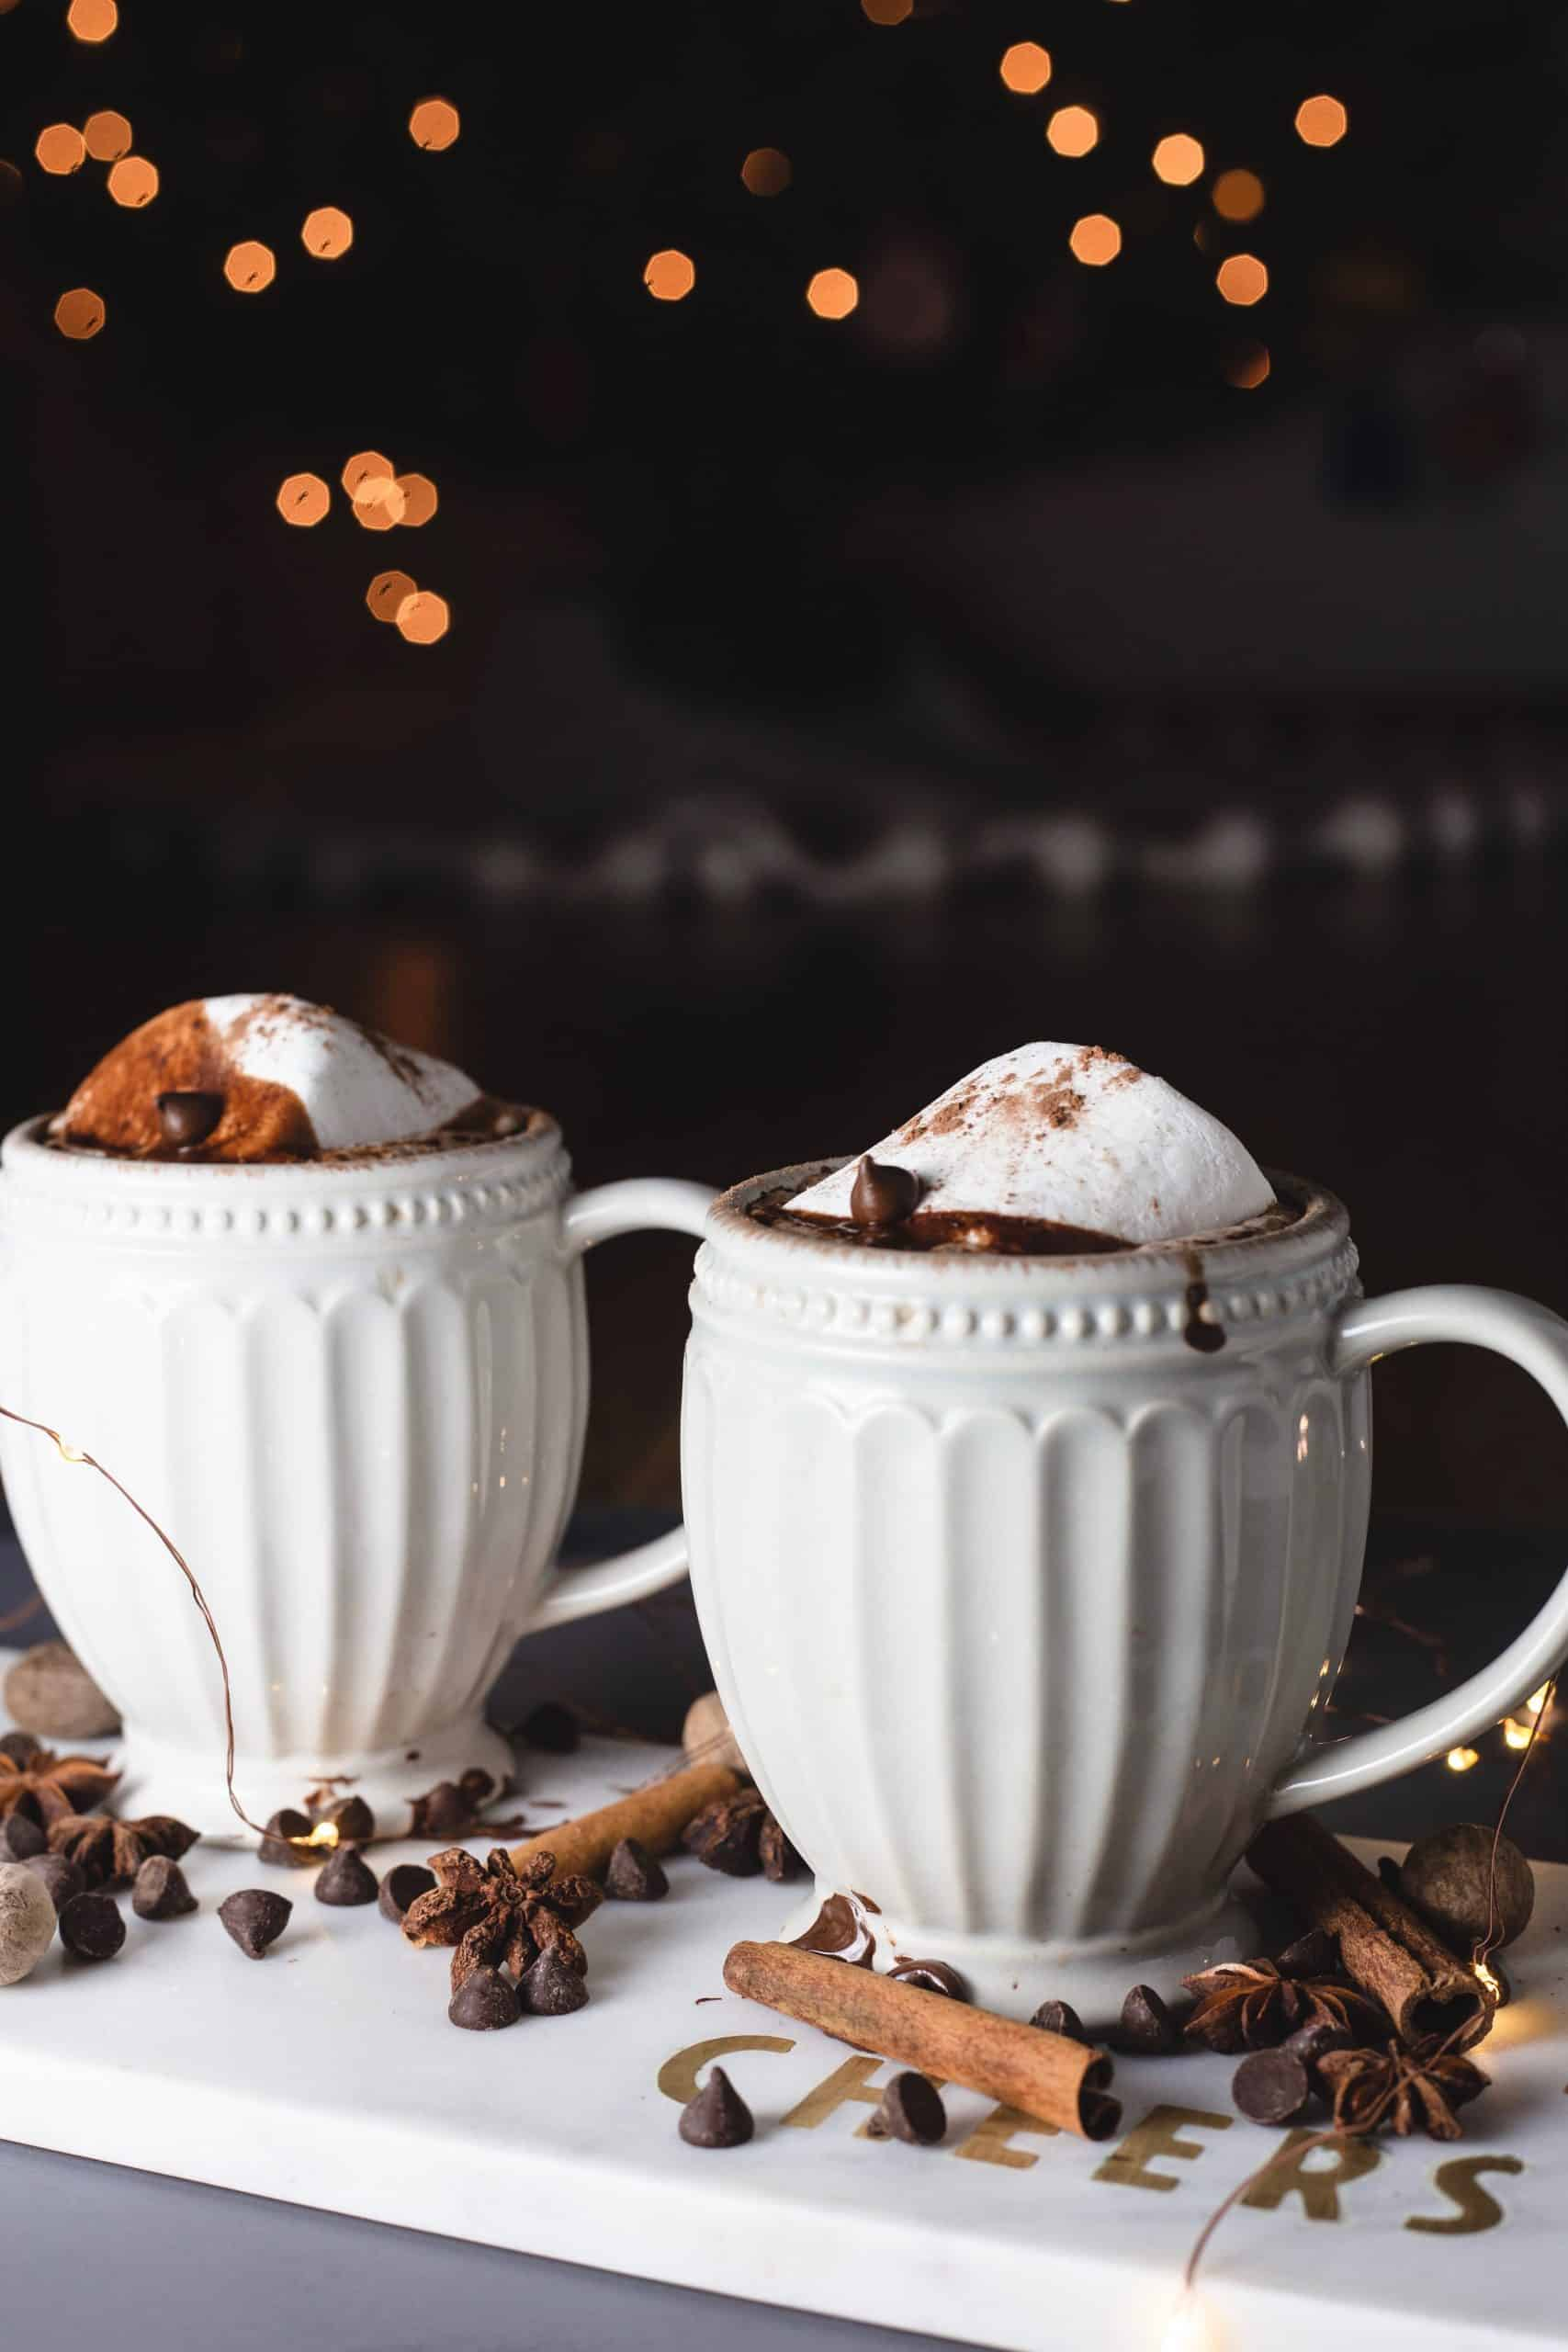 Two mugs with hot chocolate and chocolate dripping down the side with string lights